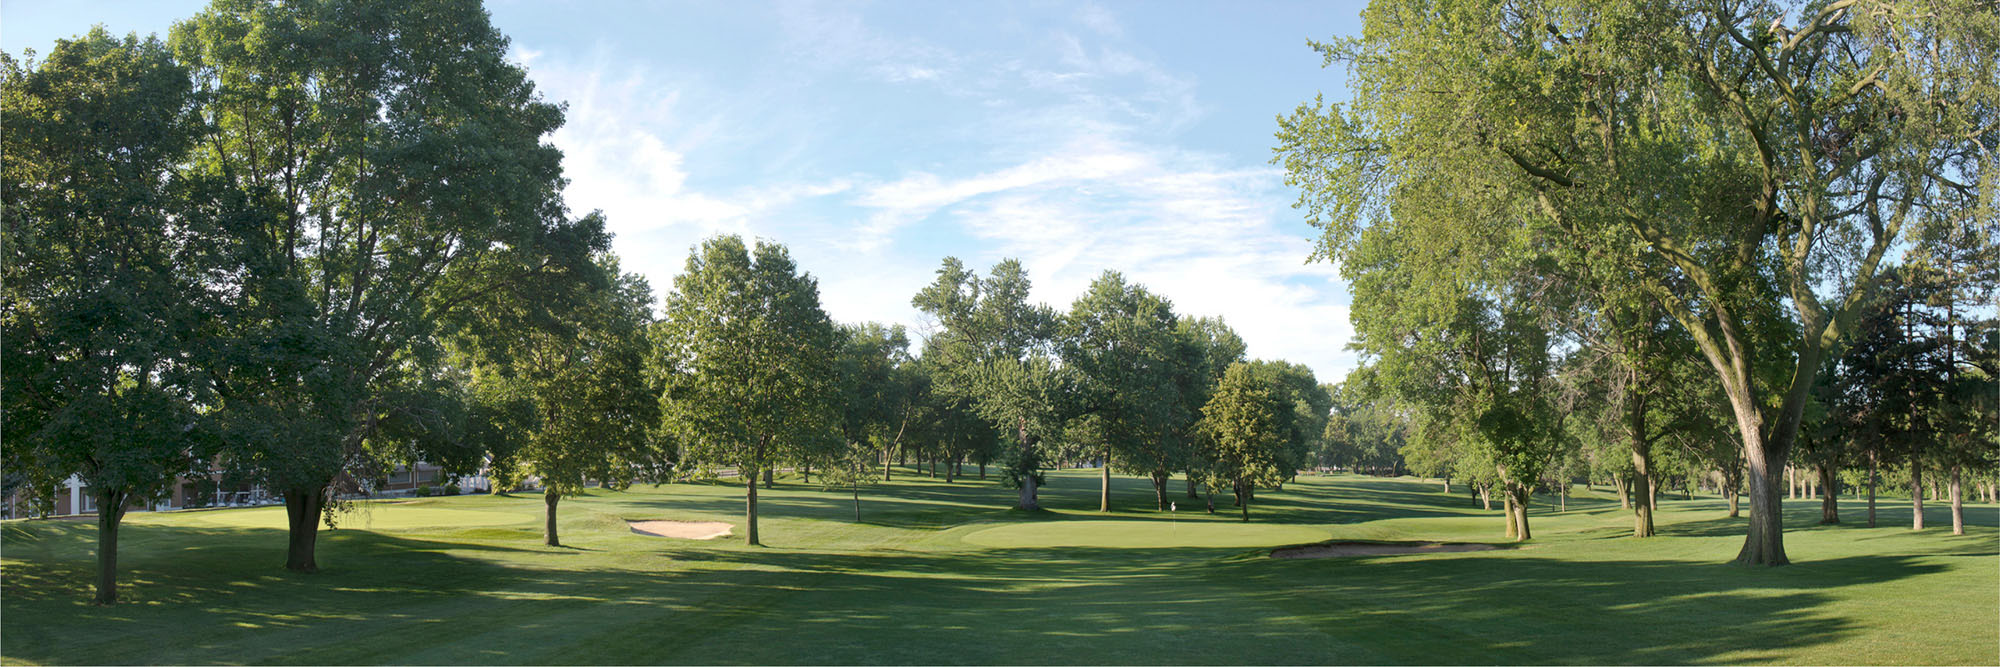 Golf Course Image - Field Club of Omaha No. 9